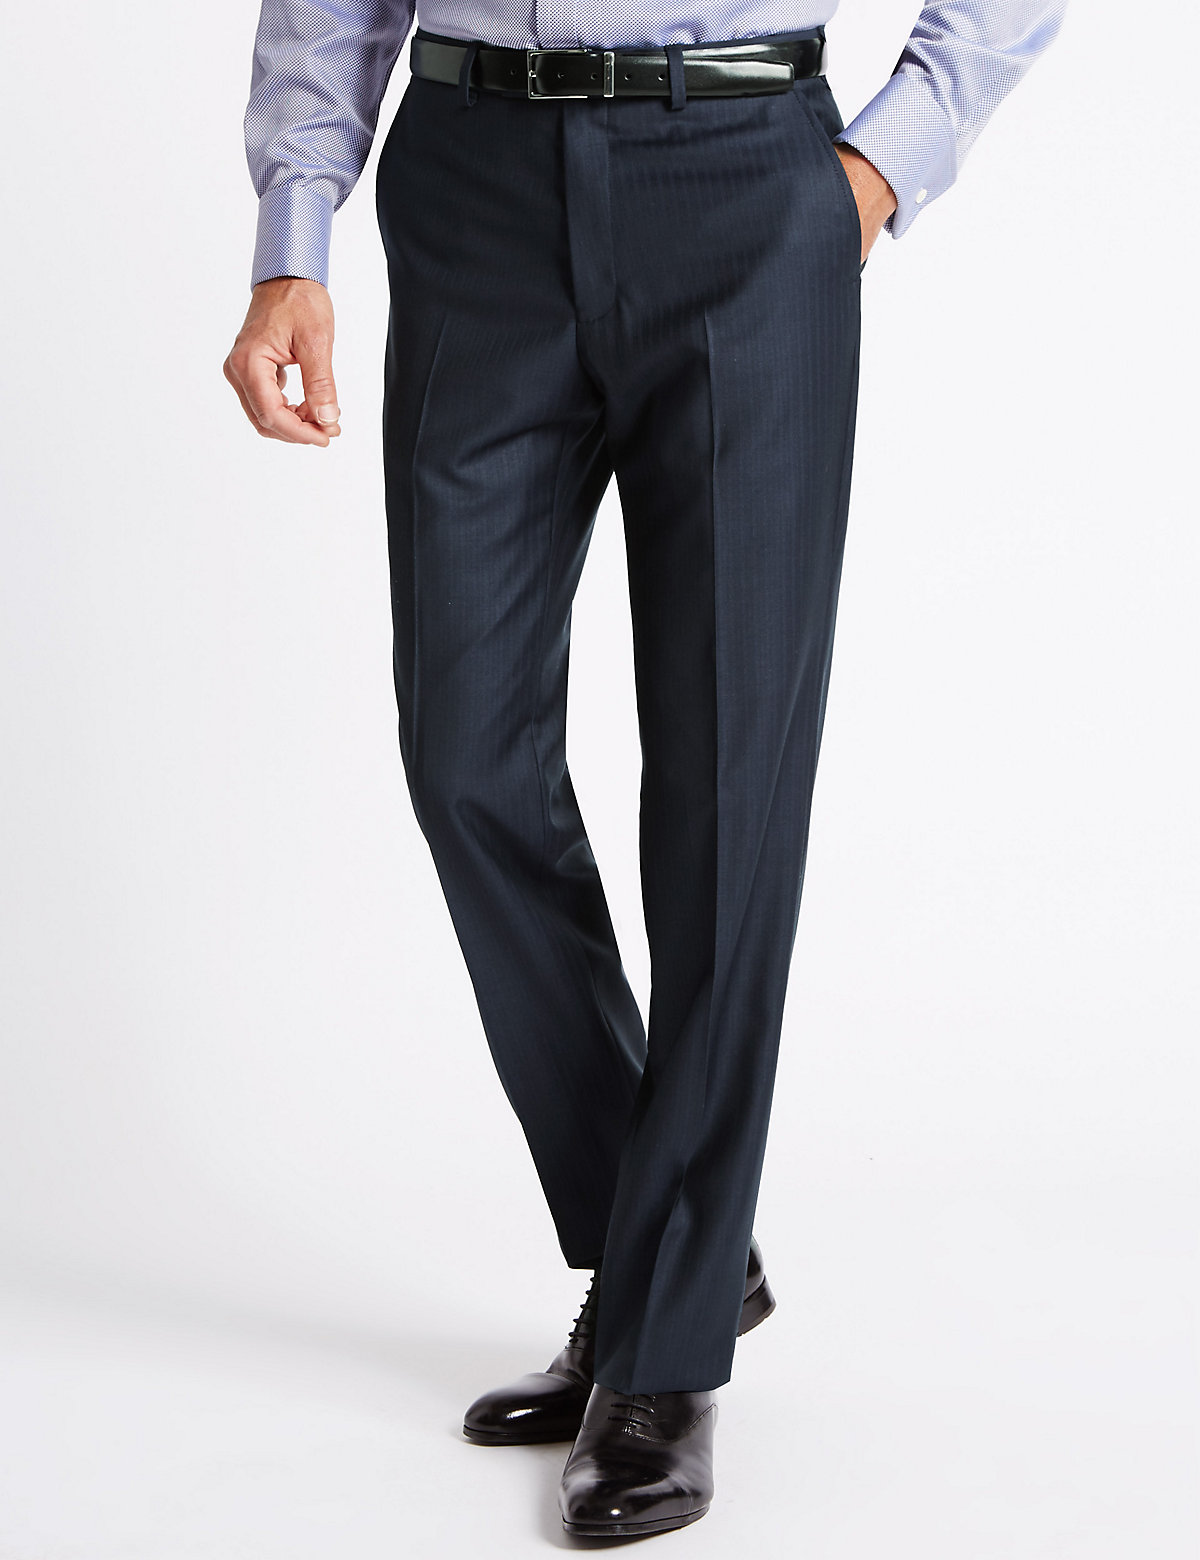 Savile Row Inspired Navy Striped Tailored Fit Trousers